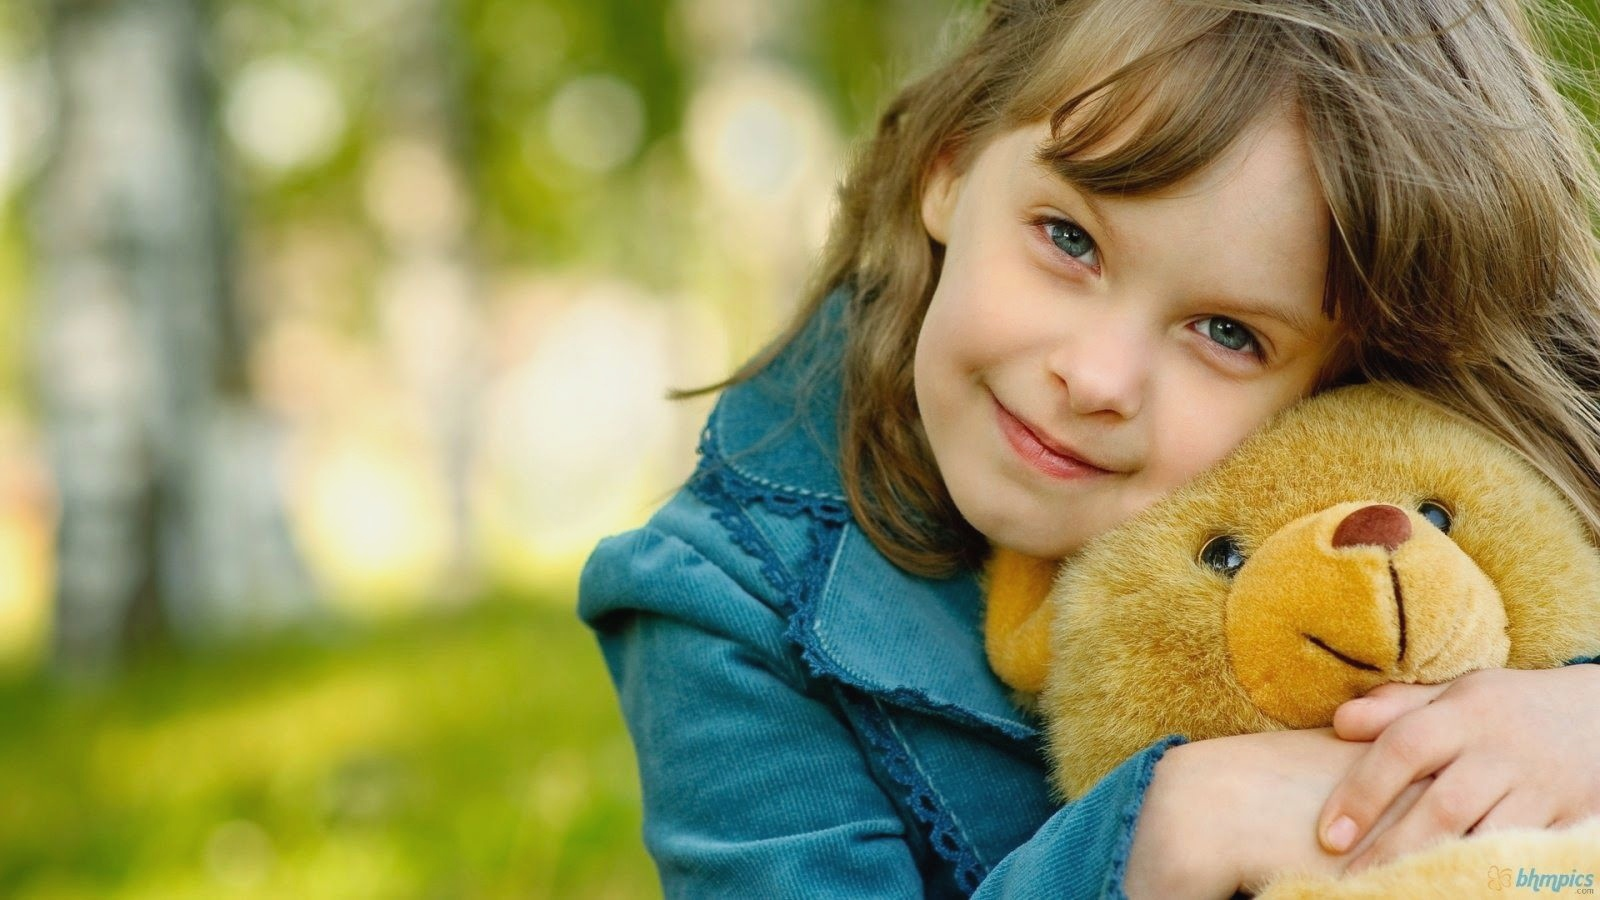 Cute Stylish Baby Girls Wallpapers - Baby Girl With Teddy Bear , HD Wallpaper & Backgrounds